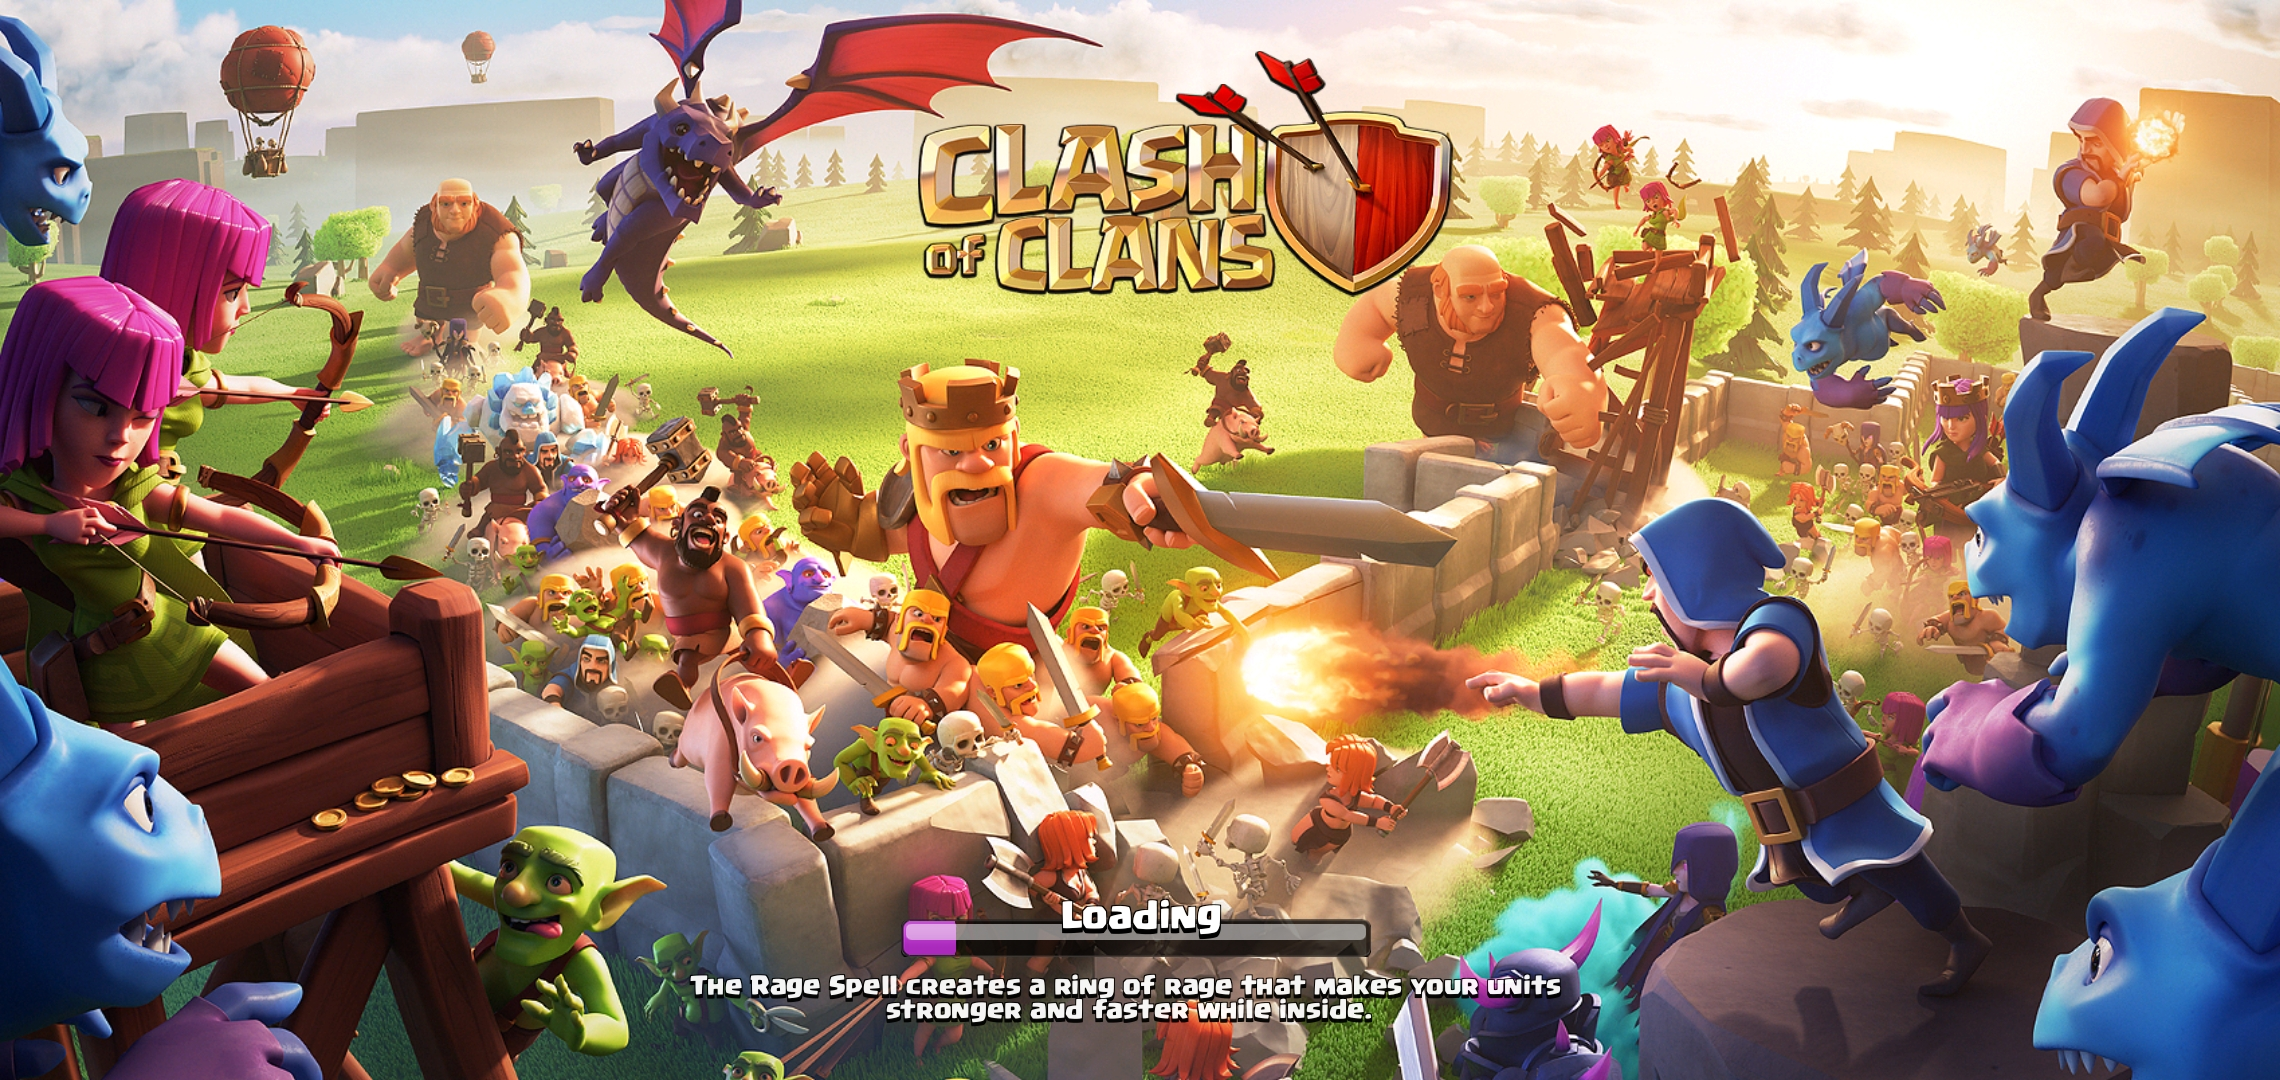 Coc gem box disabled dating